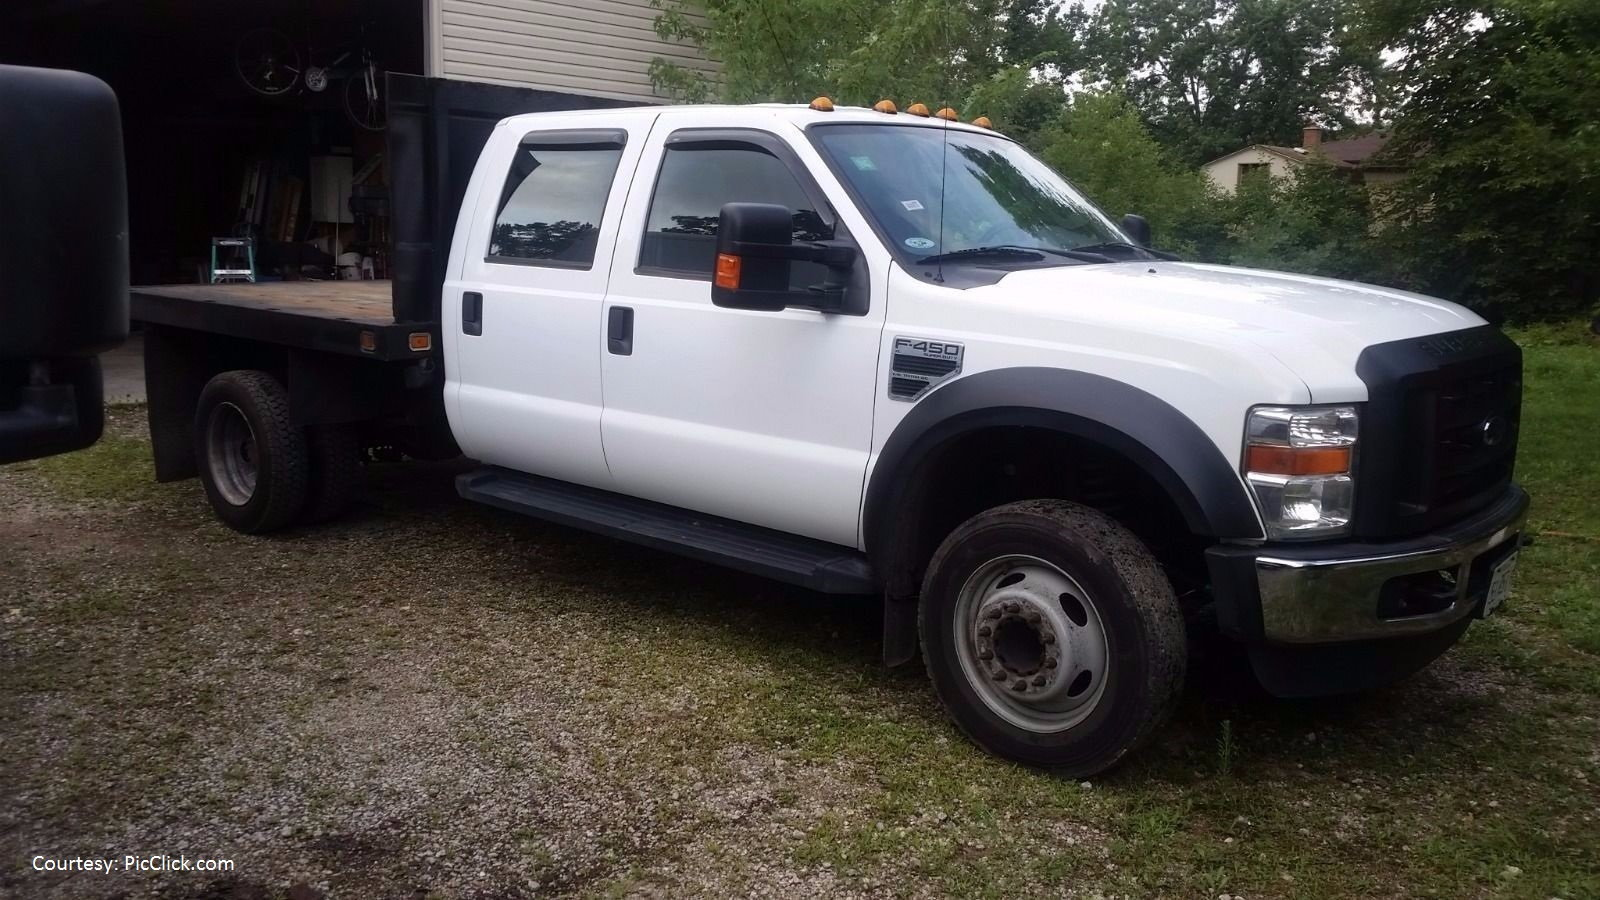 Thief makes off with F-450 and $40k in tools